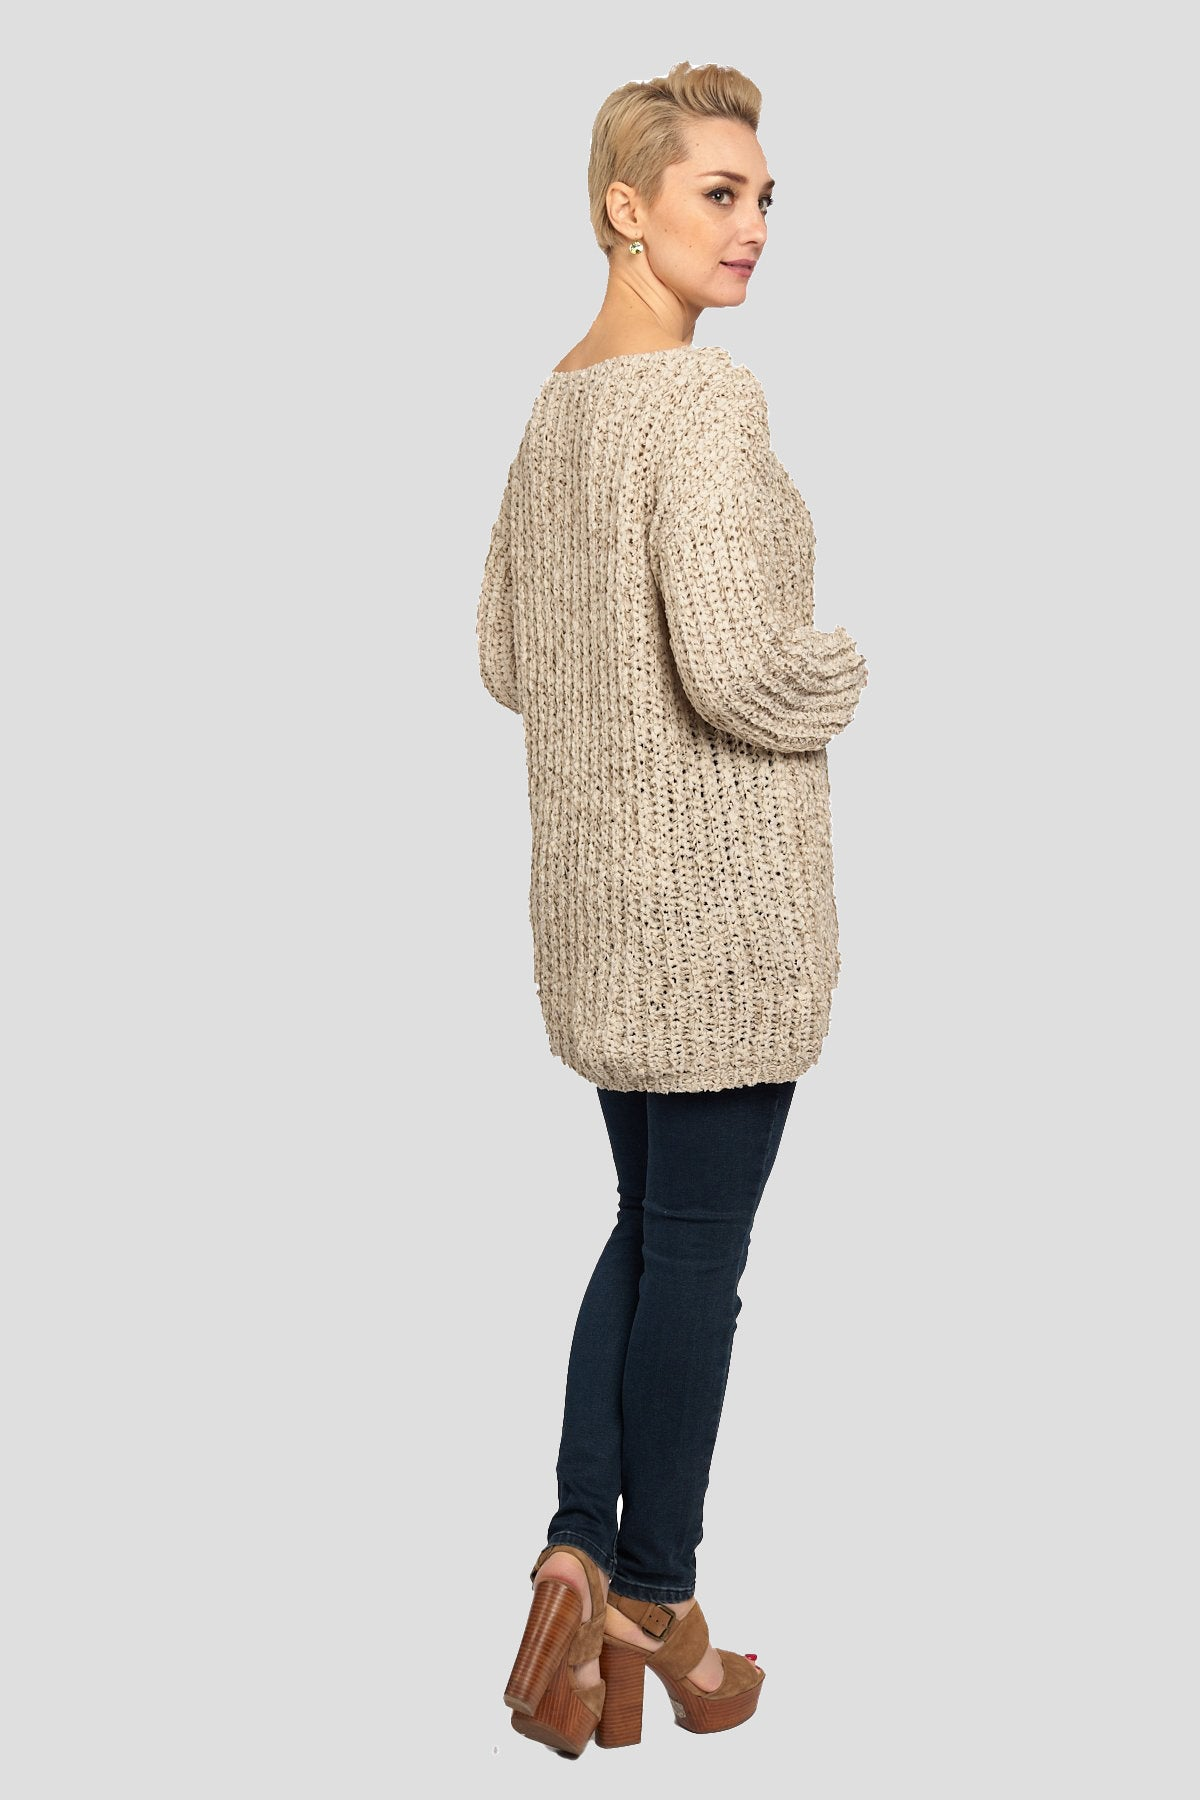 9006 | Comfy & Cozy Pullover Sweater